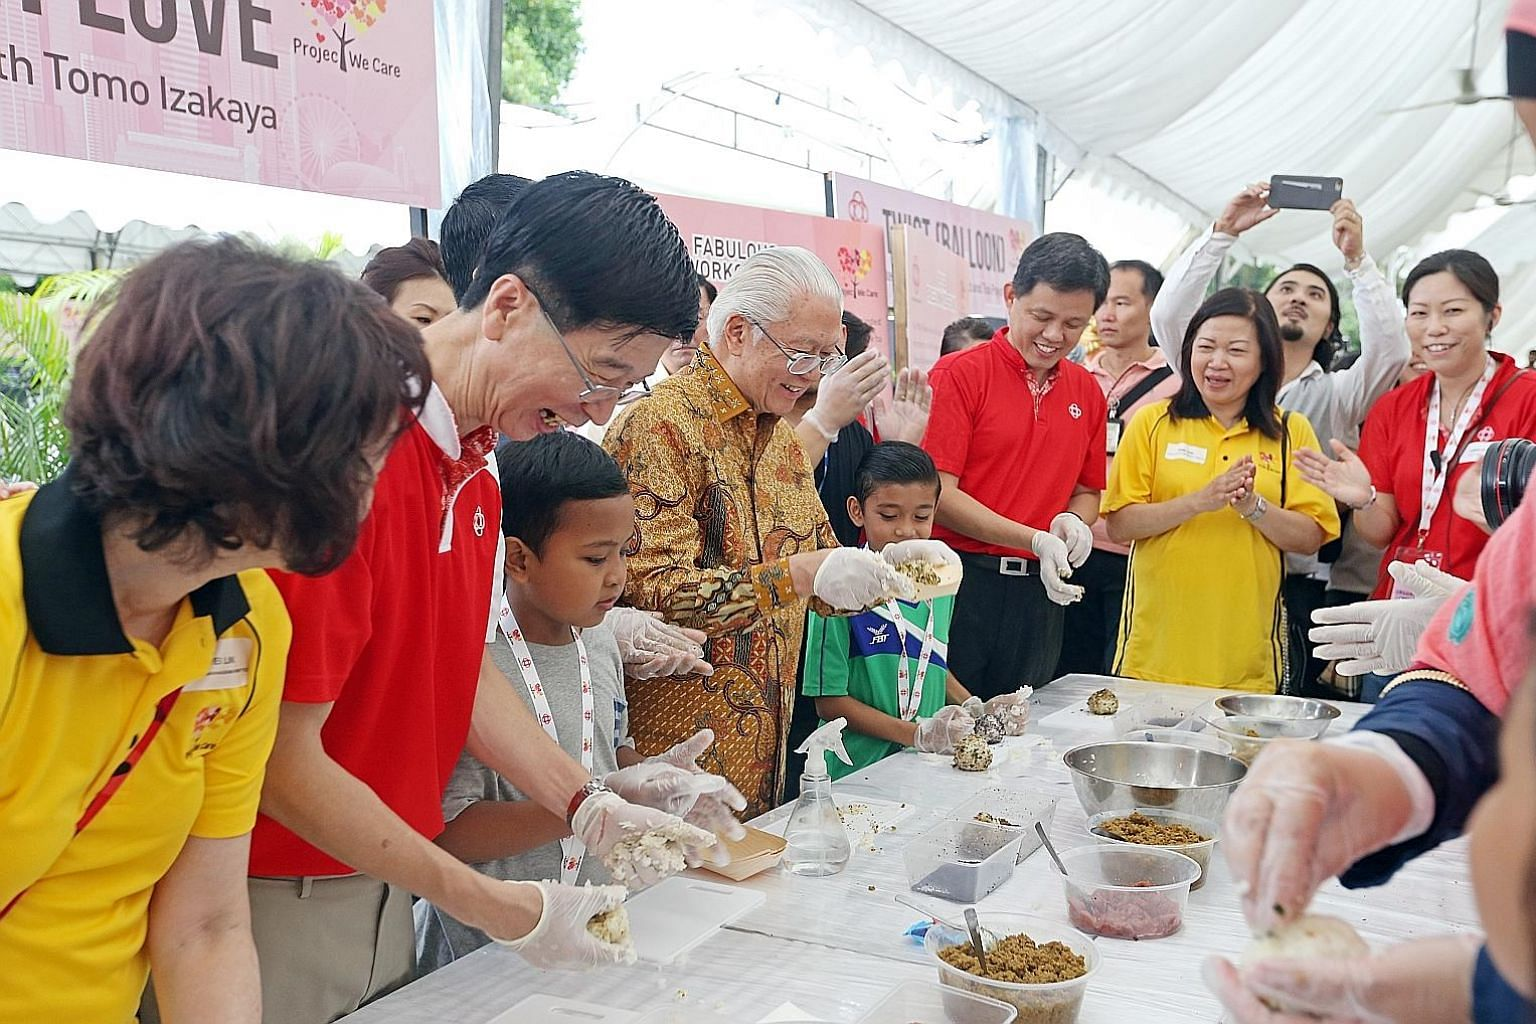 President Tony Tan Keng Yam making rice balls for beneficiaries of the new Project We Care Enrich at the Istana yesterday. With him were People's Association (PA) chief executive director Ang Hak Seng (second from left); Minister in the Prime Ministe